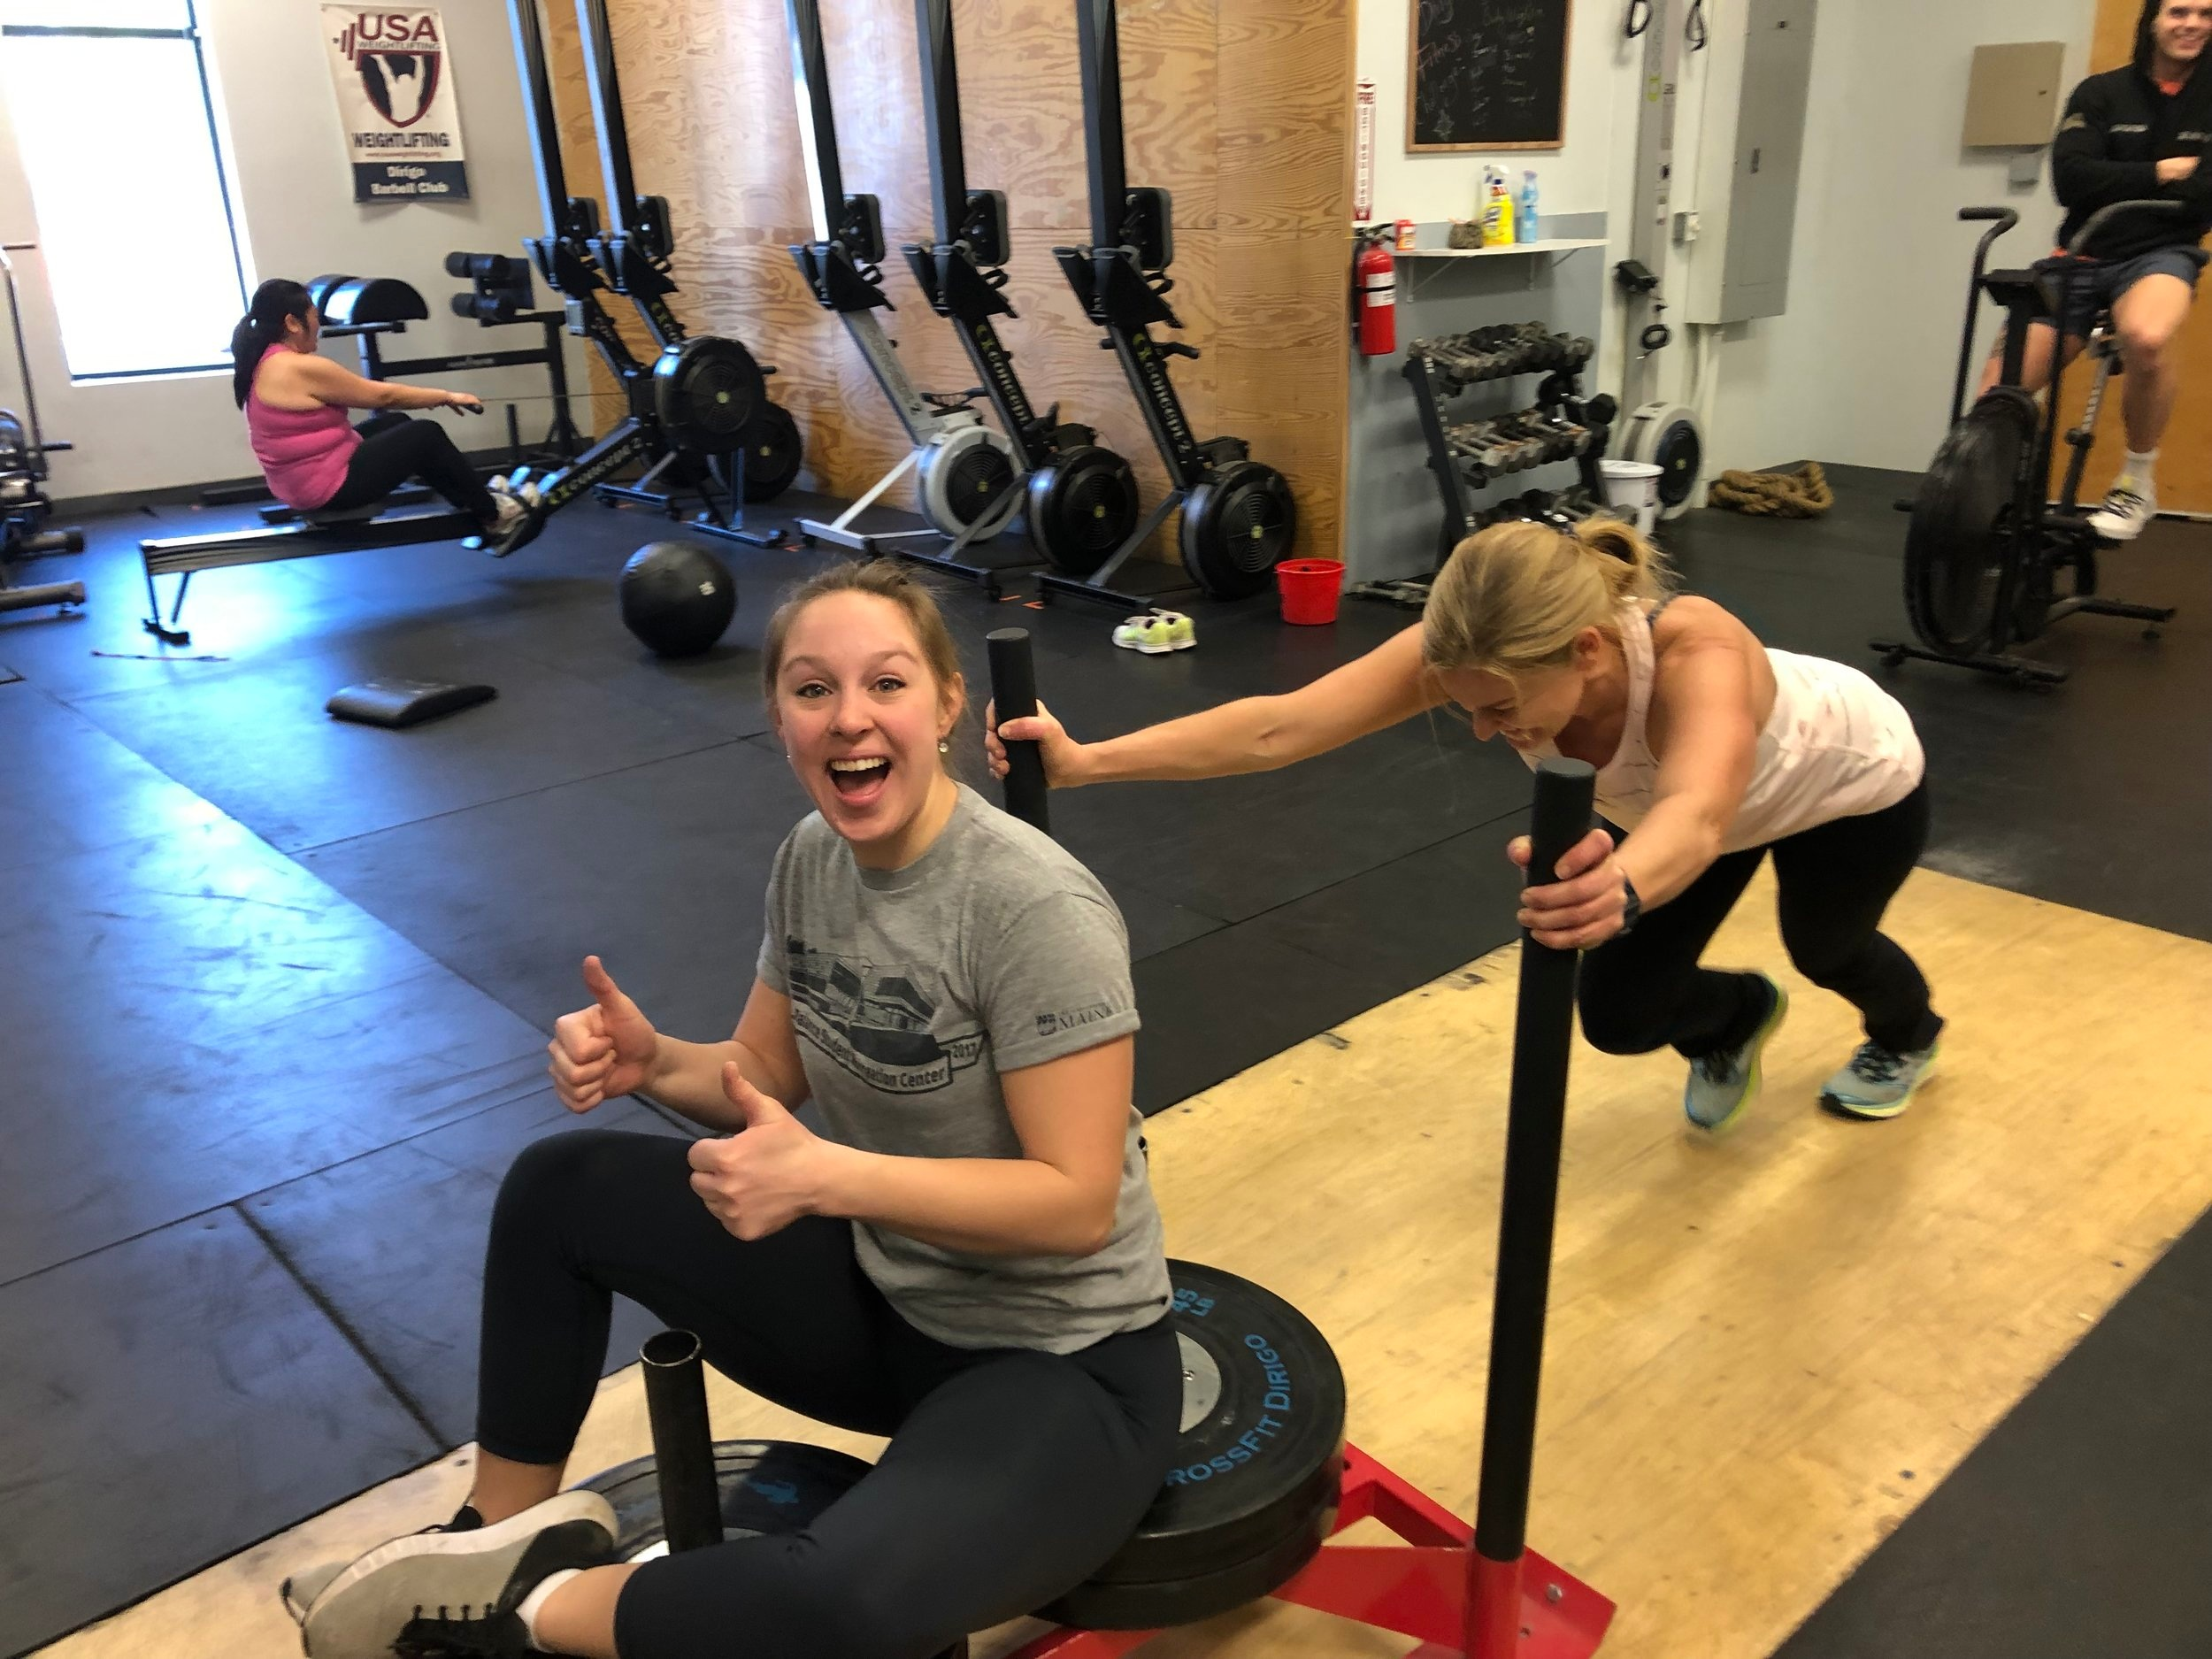 Personal Training - If you are looking for training that will be safe, relationship-based, and 100% focused on you, then one-on-one training is for you! Your coach will gear every workout, exercise, repetition, and set toward your main goal. Whether you are just getting started or are just ready to see results that match your effort, at Dirigo Fitness you will be provided with the support, encouragement, and education to ensure your success.